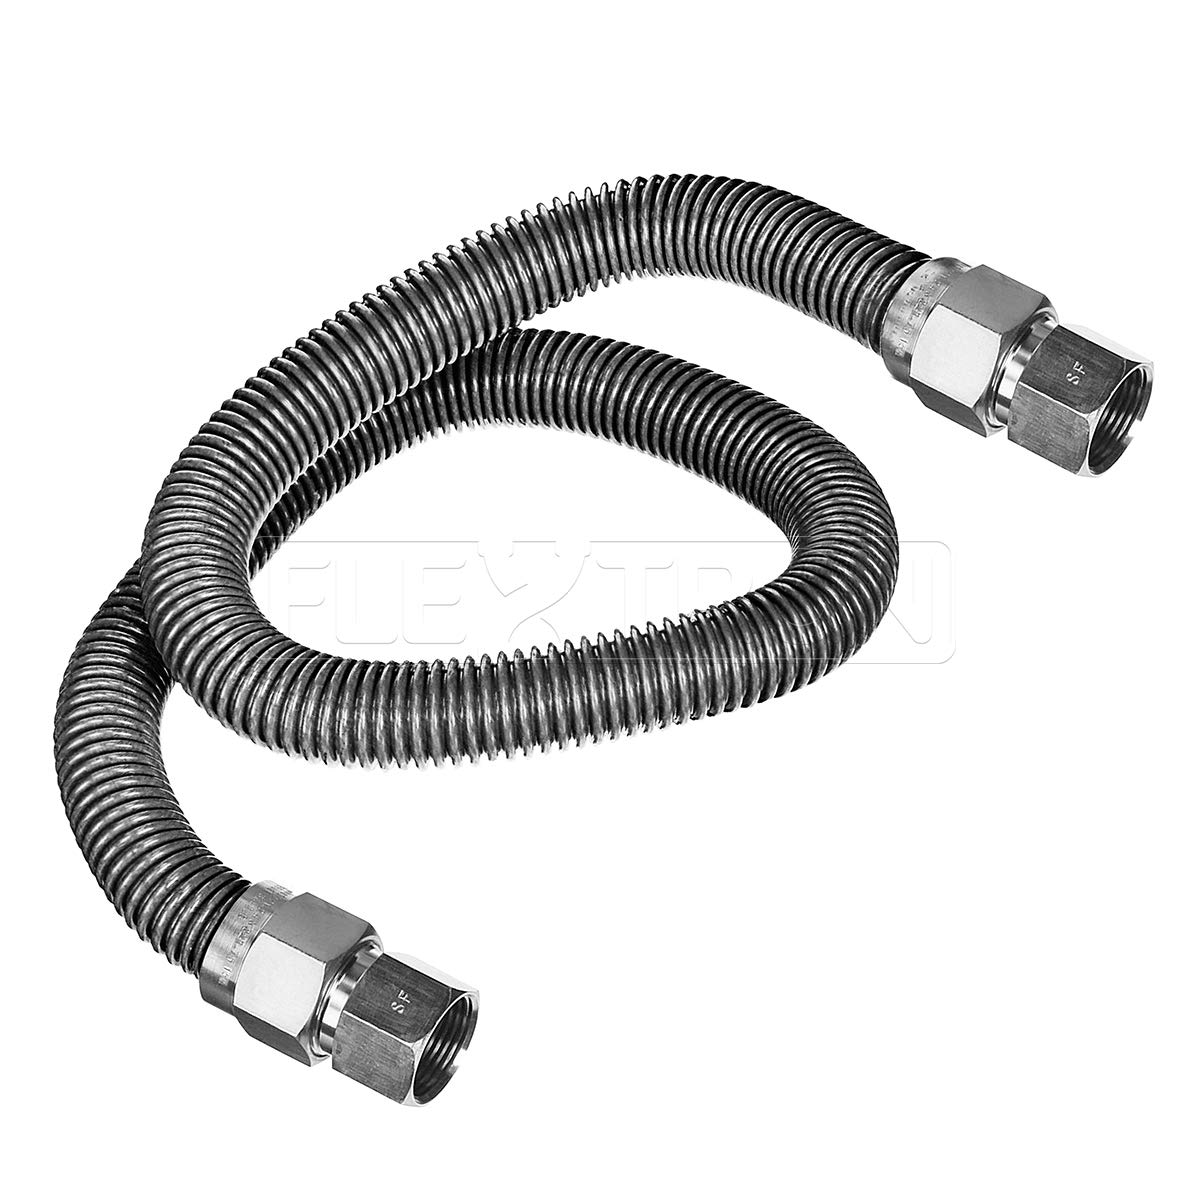 Flextron FTGC-SS14-36H 36 Inch Flexible Gas Line Connector with 3/8 Inch Outer Diameter & 3/8 Inch FIP x 3/8 Inch FIP Fittings, Uncoated Stainless Steel Space Heater Connectors, CSA Approved Everflow Supplies